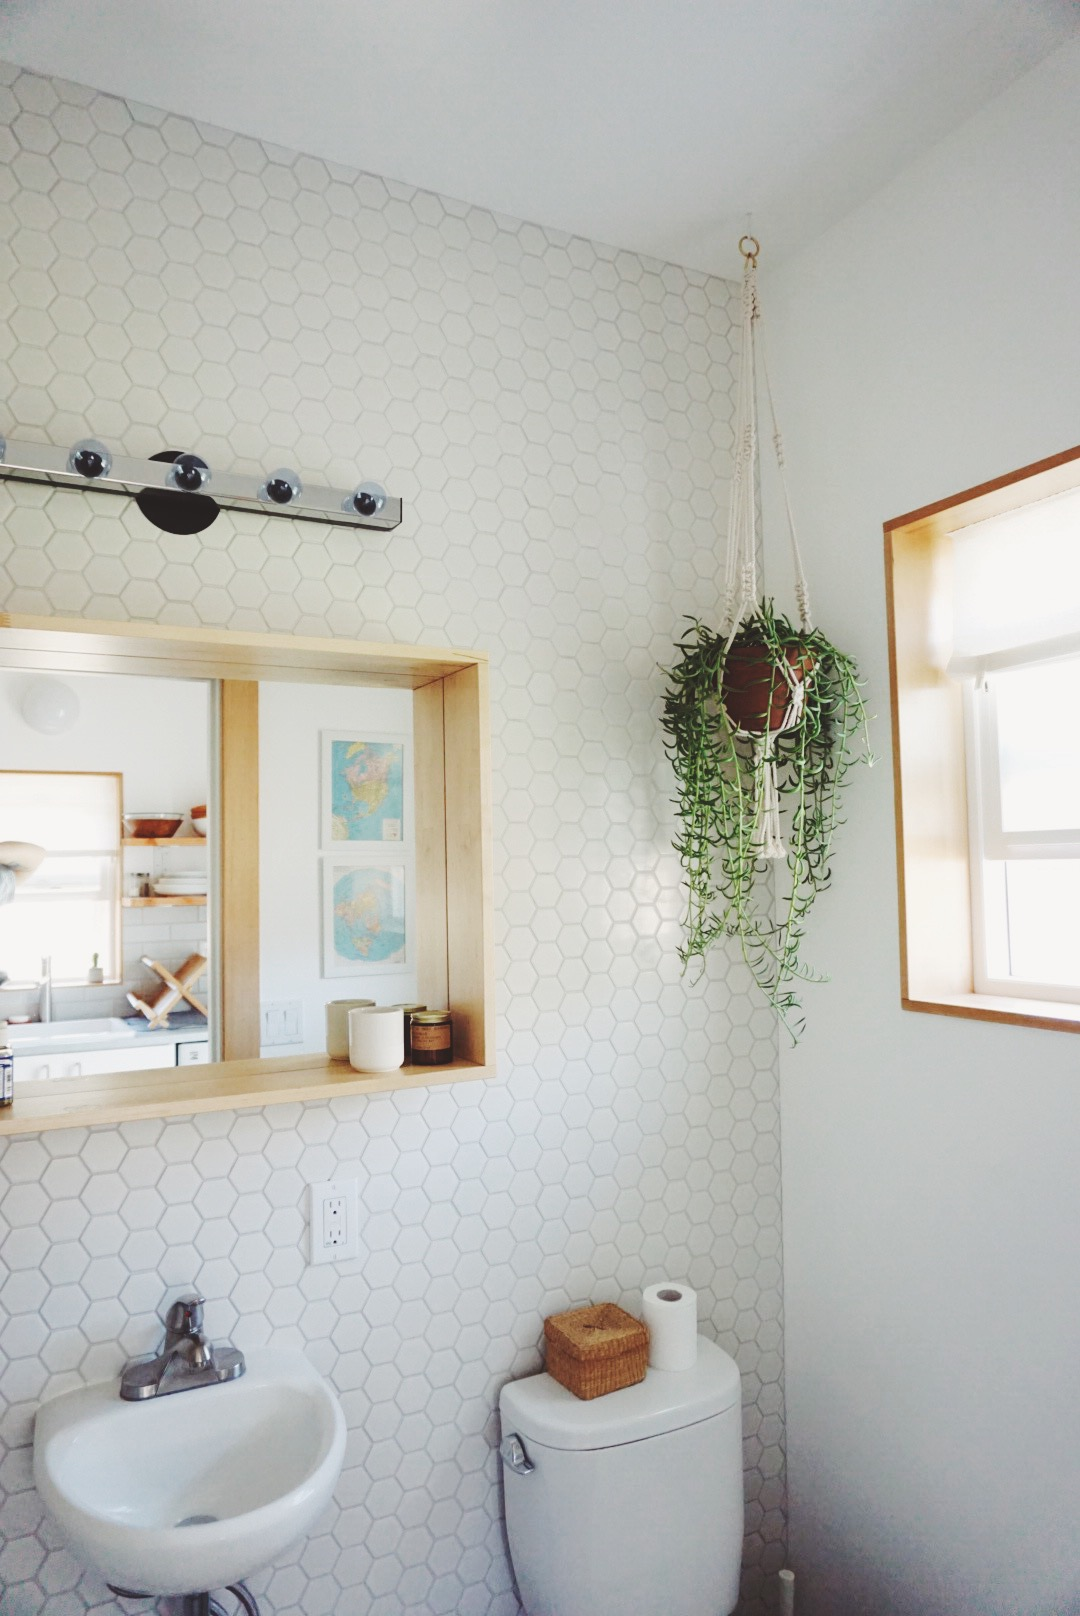 Macrame in the bathroom